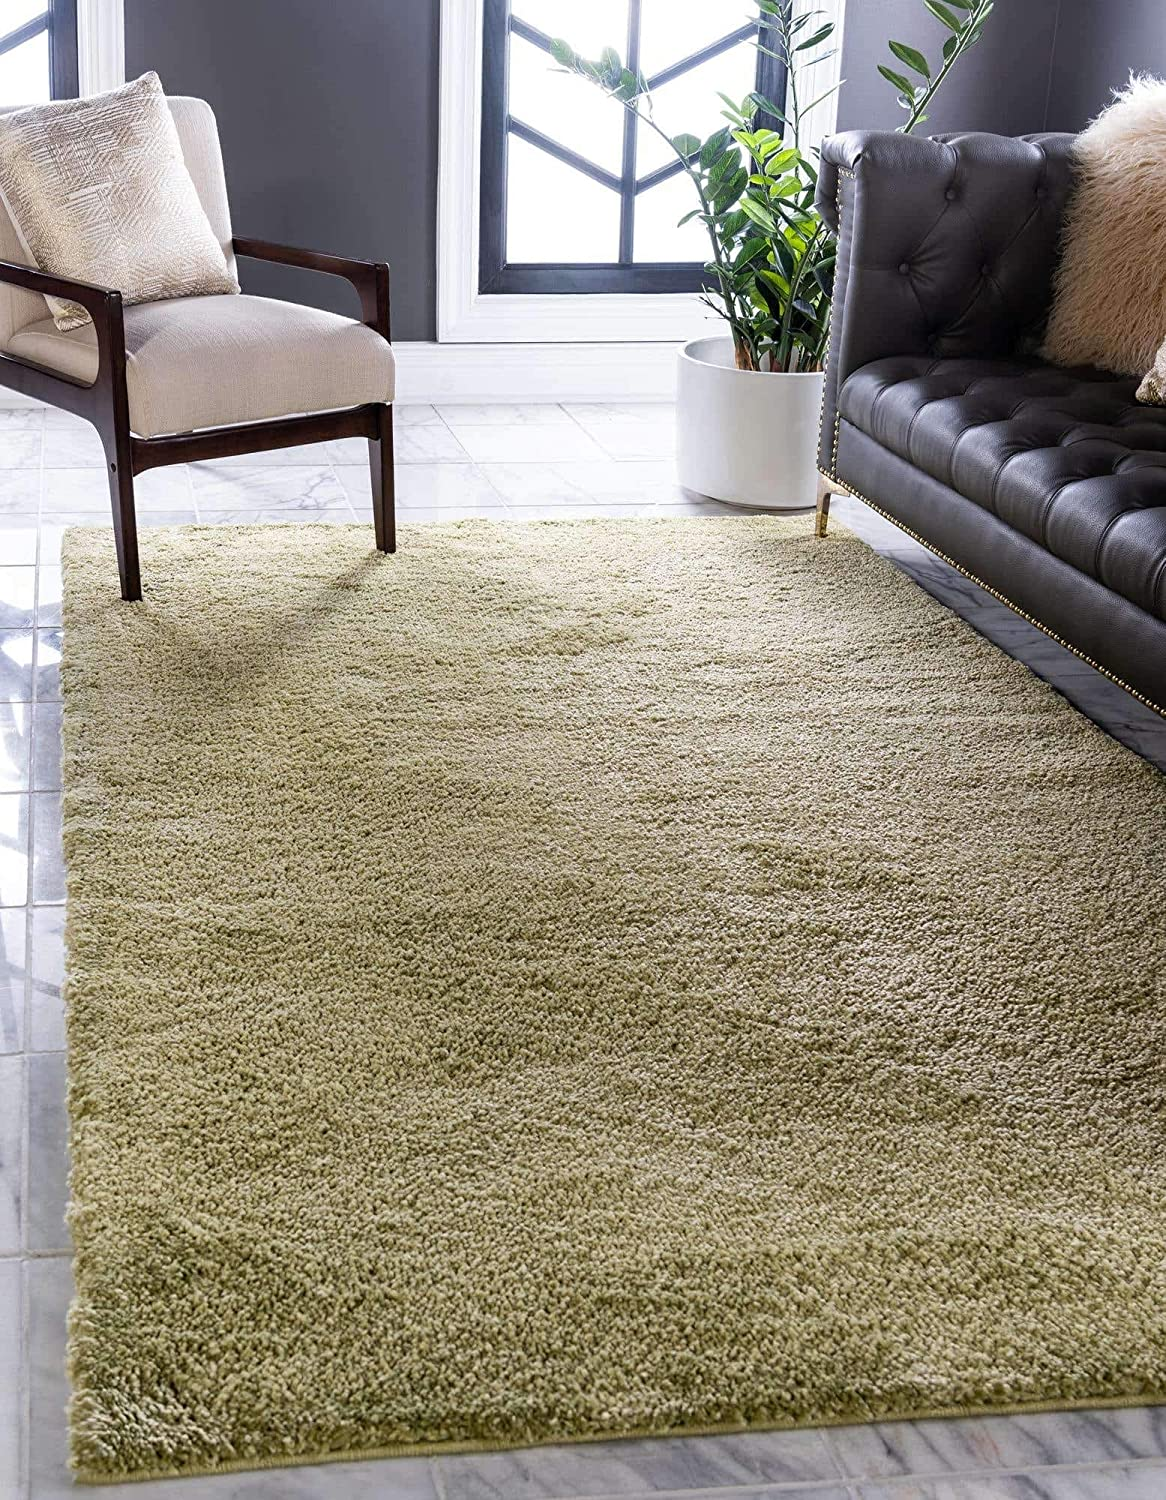 Unique Loom Solo High quality new Max 44% OFF Collection Solid Plush Kids 7 7' x Area Rug 5'